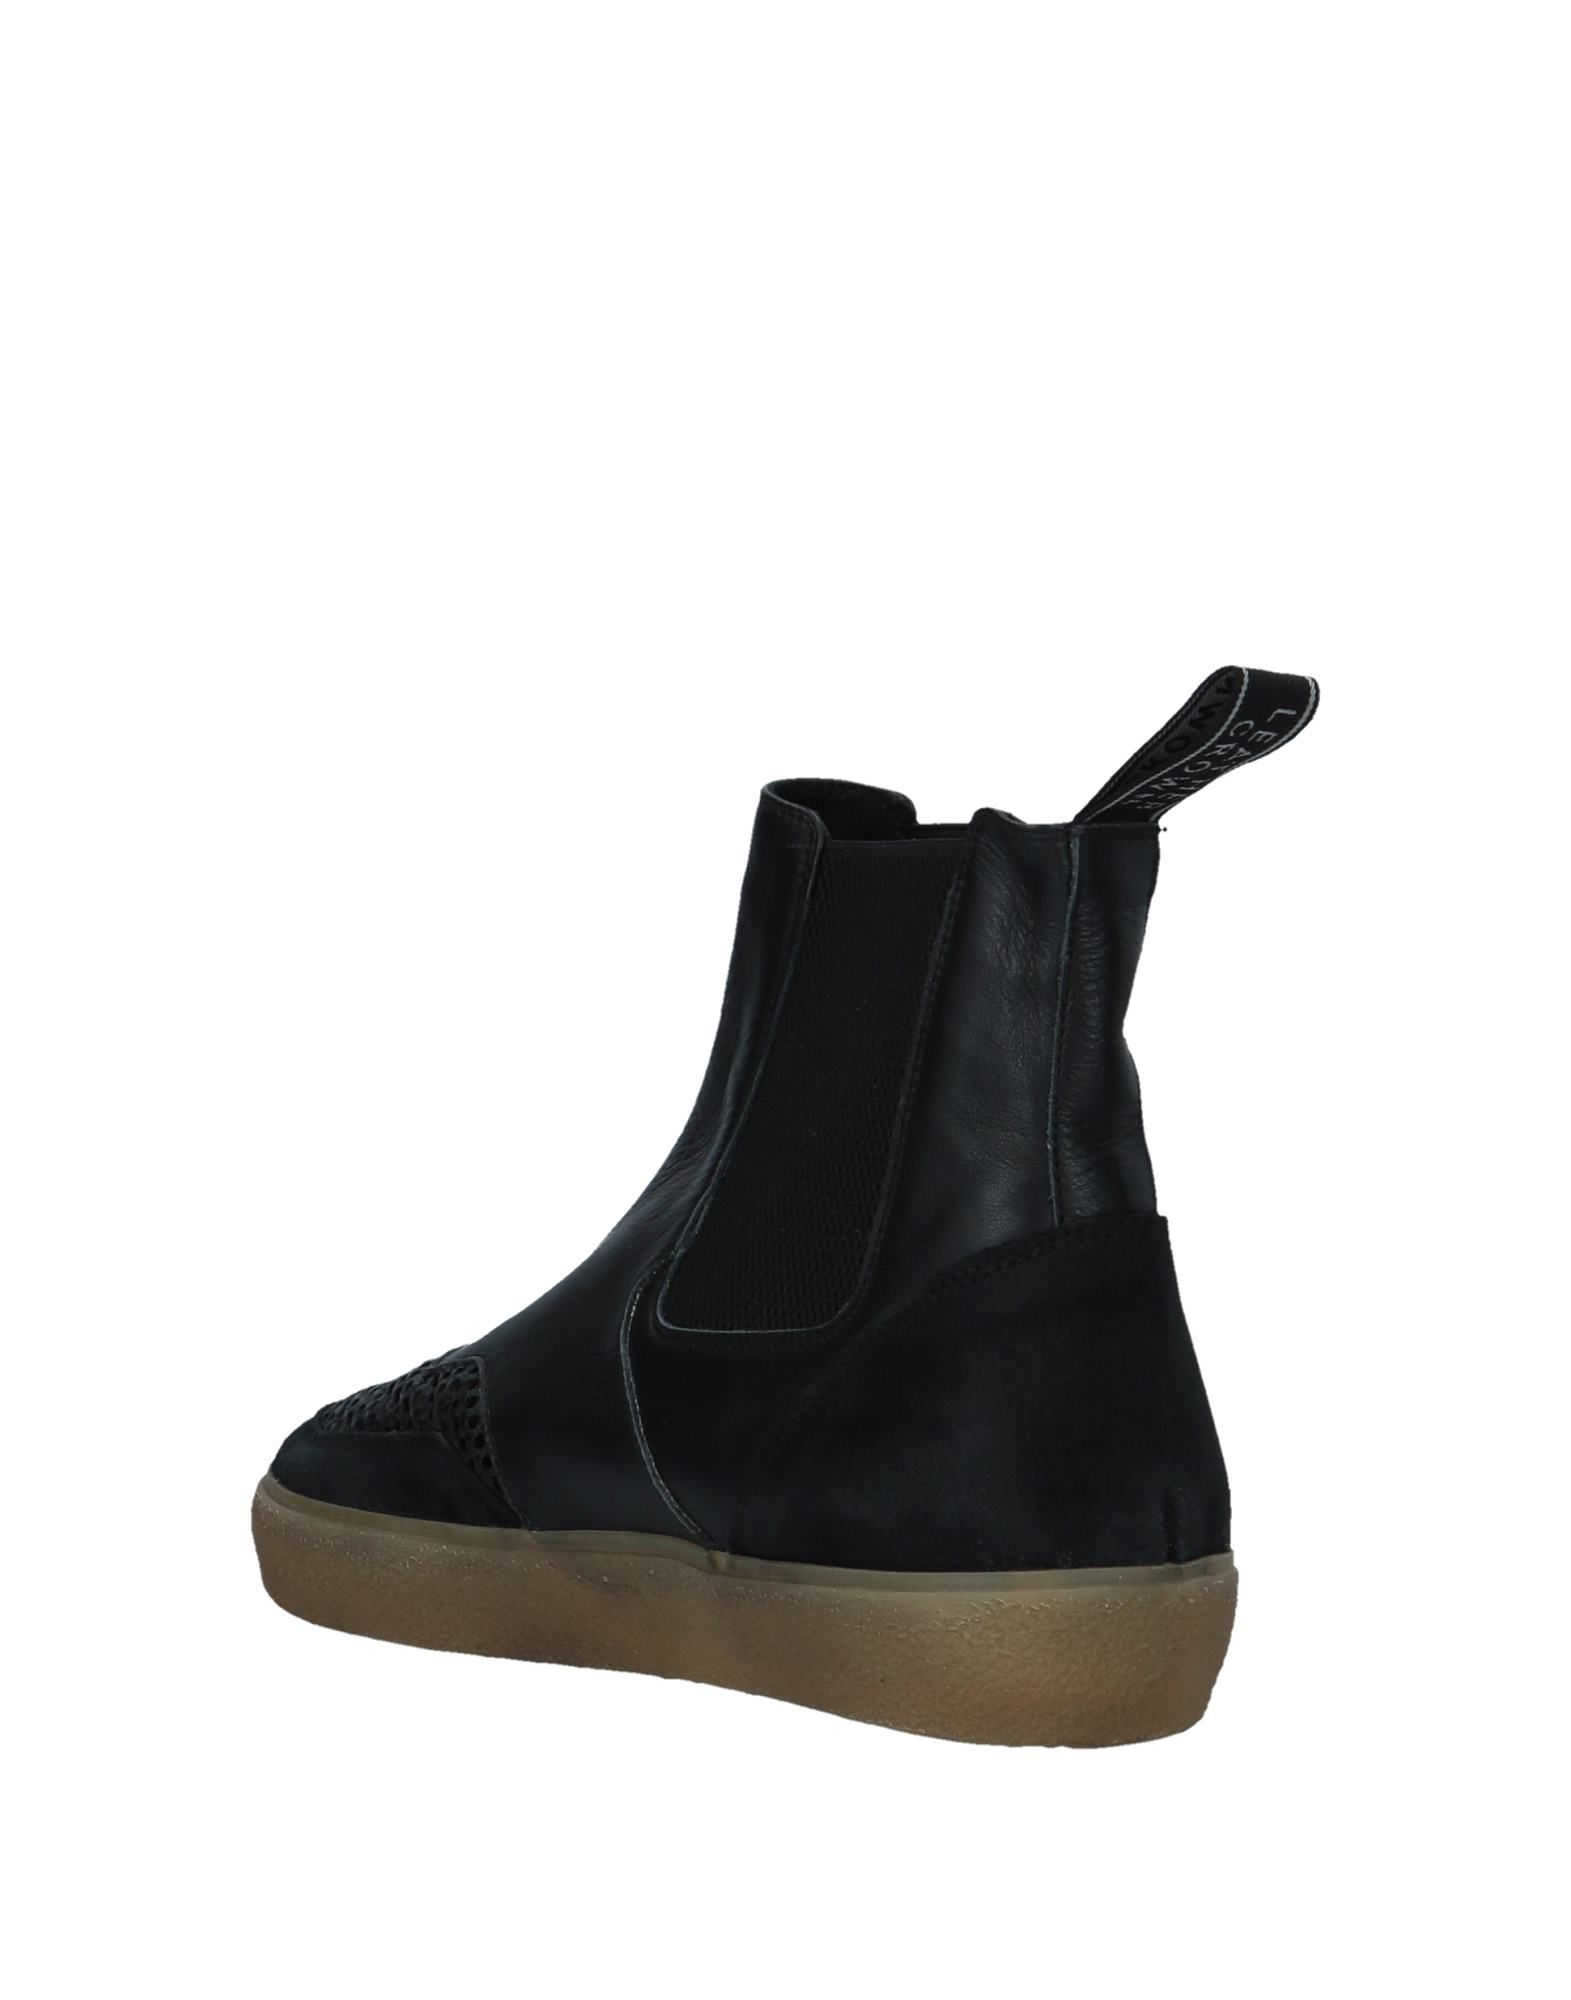 Leather Crown Boots - Men Leather  Crown Boots online on  Leather Australia - 11532010BL df2f6d